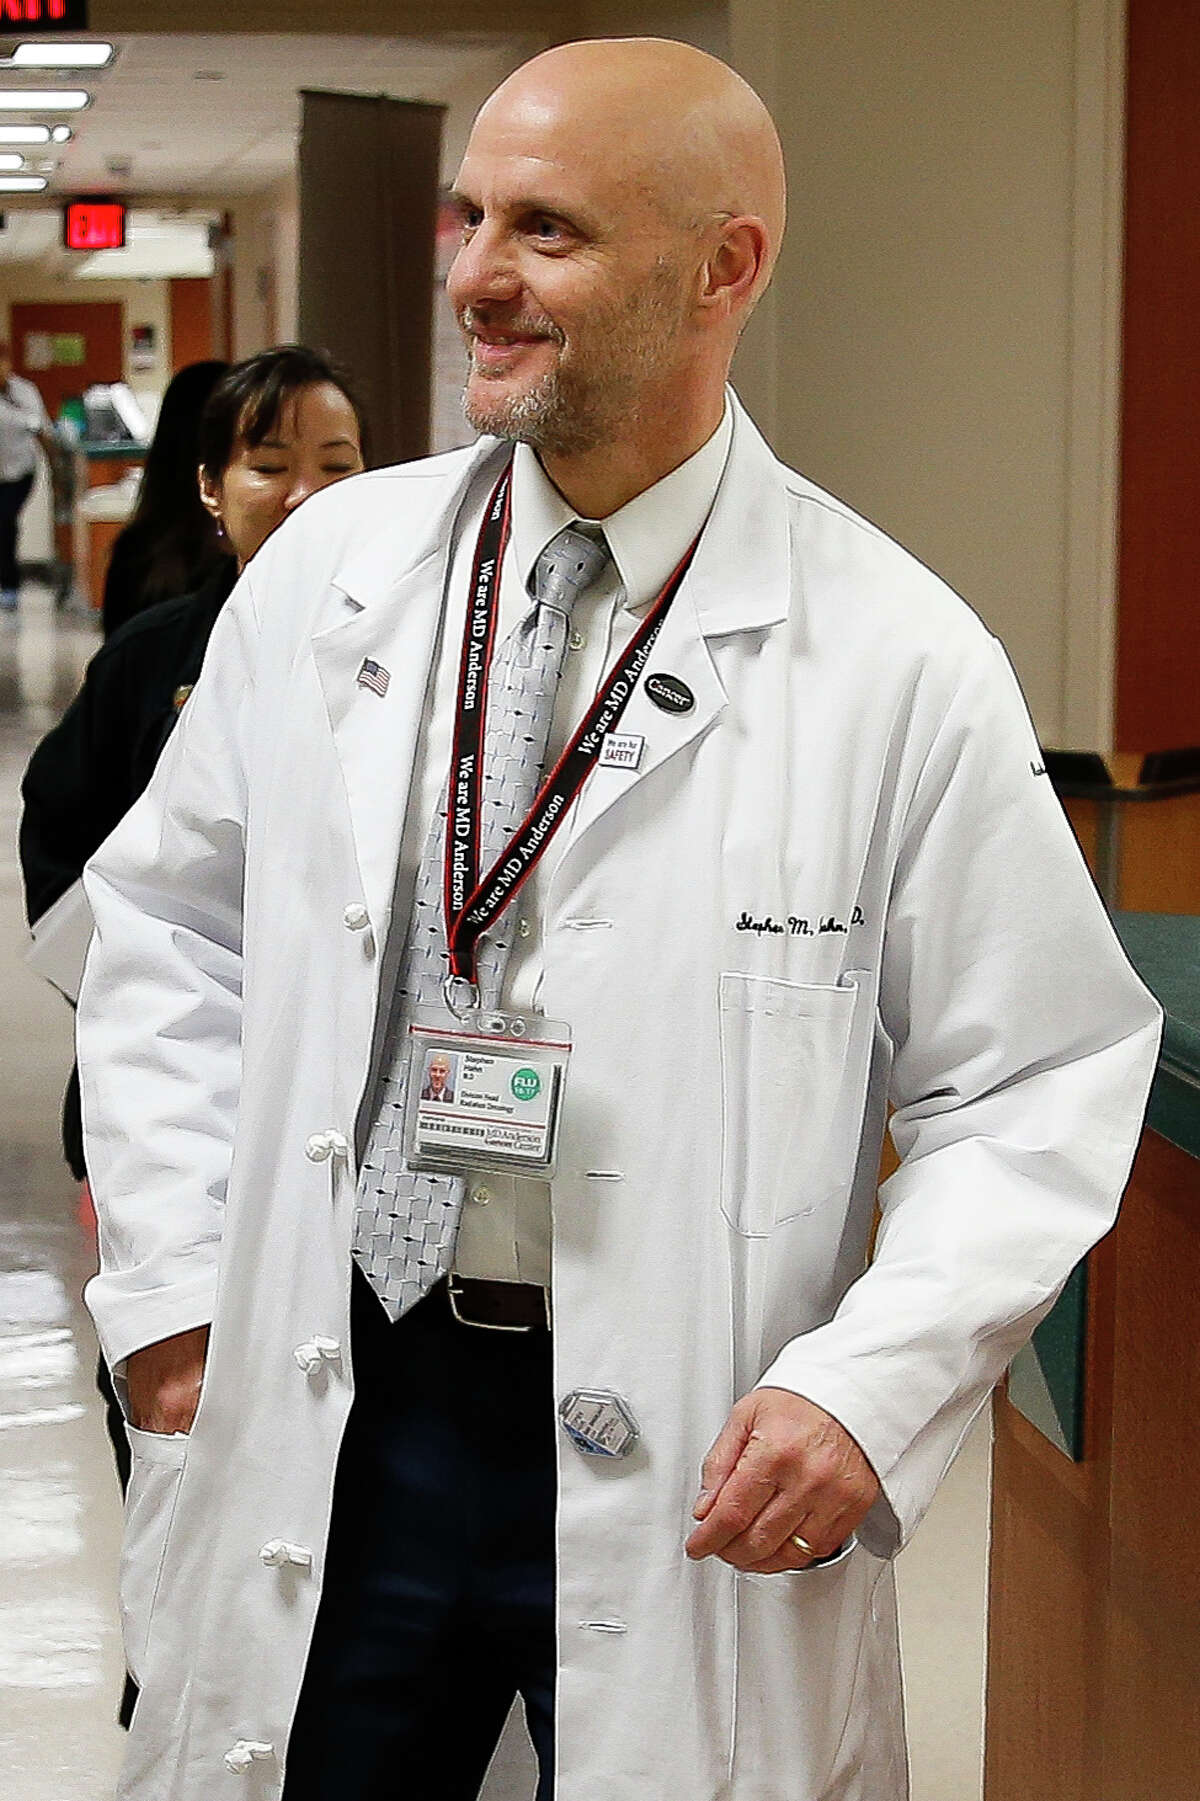 19. Dr. Stephen Hahn, deputy president, COO The University of Texas MD Anderson Cancer Center Compensation:$880,000